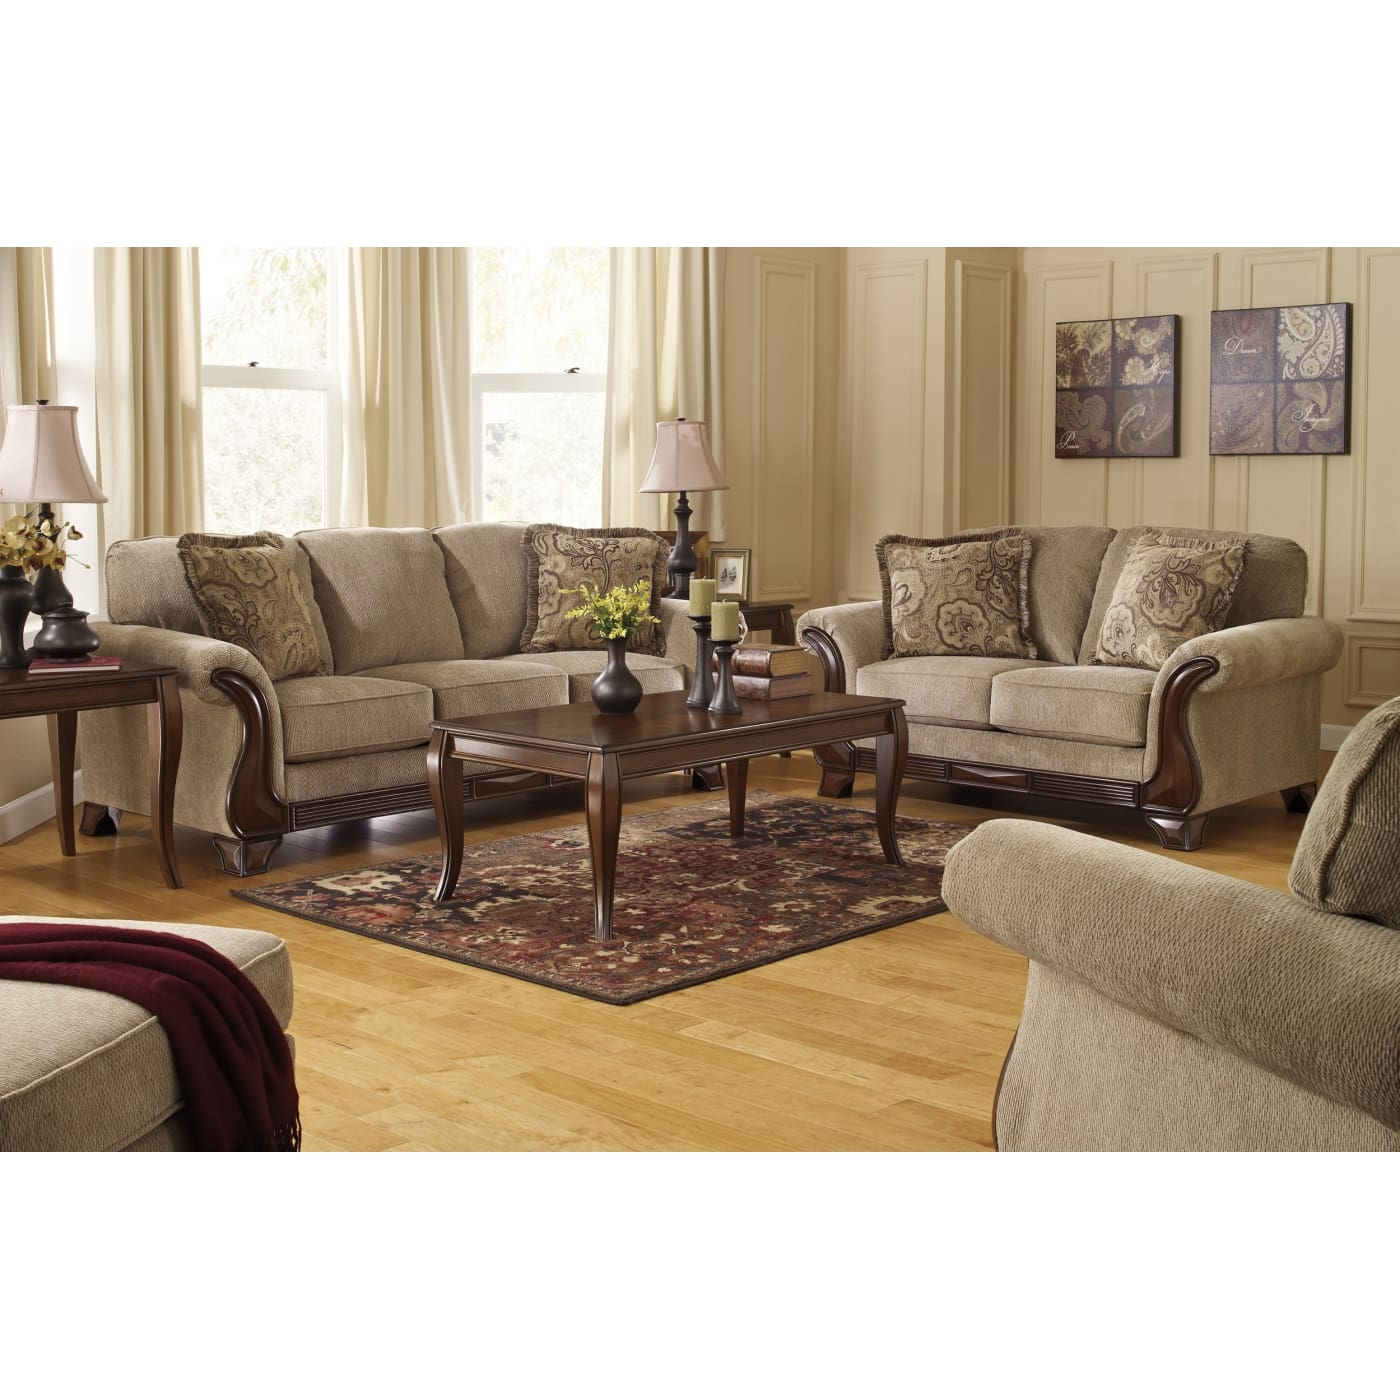 Ashley Furniture 14 Piece Package: Signature Design By Ashley Lanett Barley 4 Piece Living